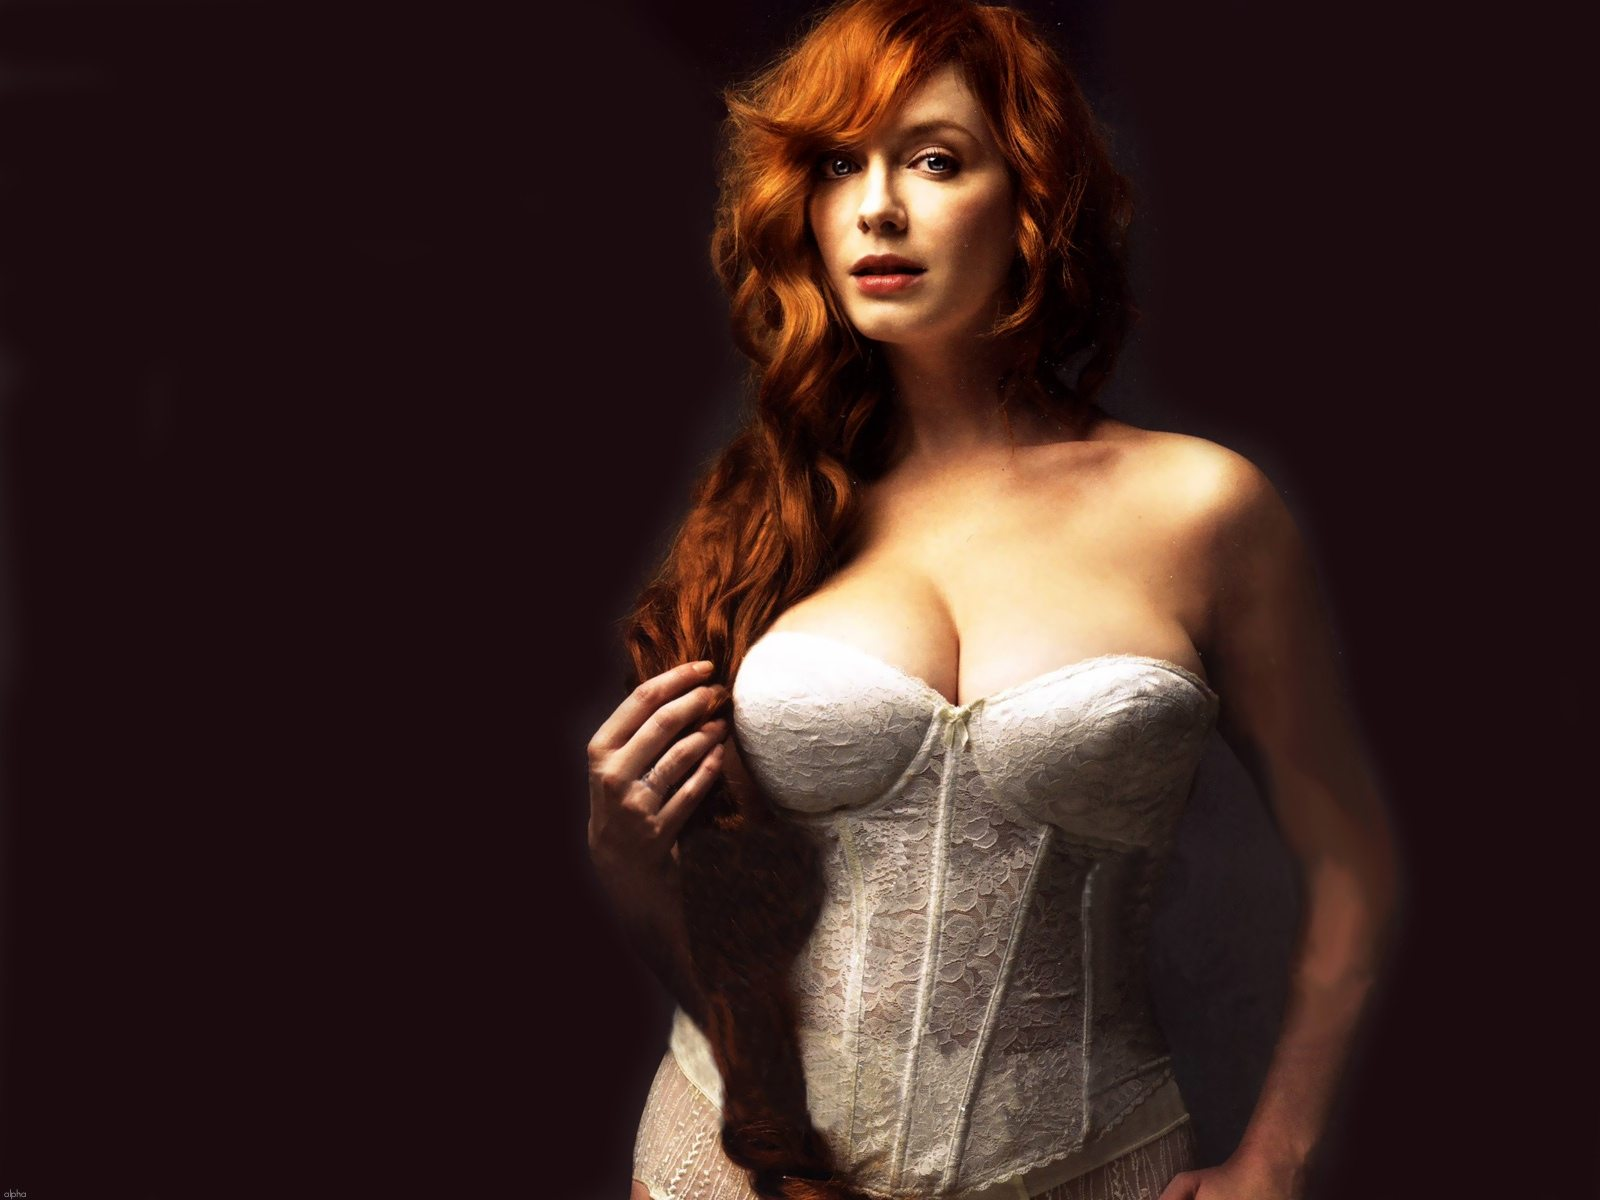 hot-christina-hendricks-lingerie-hot